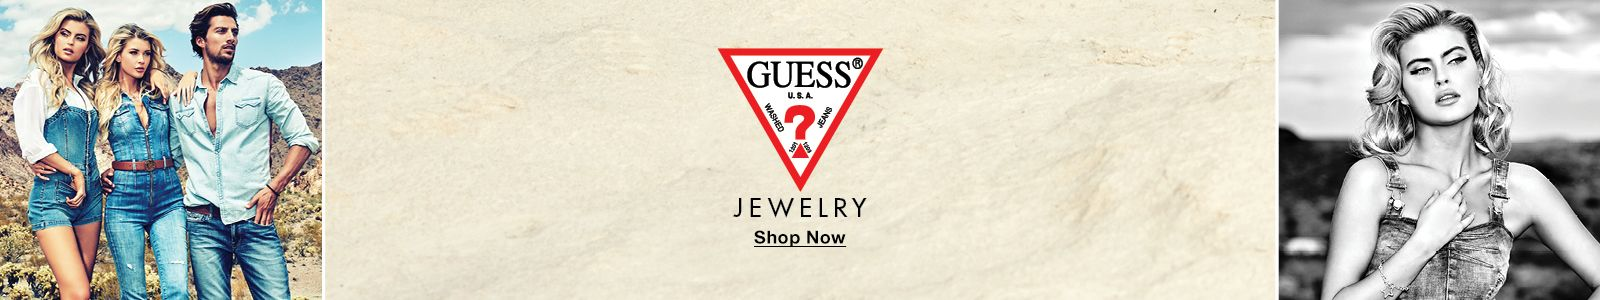 Guess, Jewelry, Shop Now